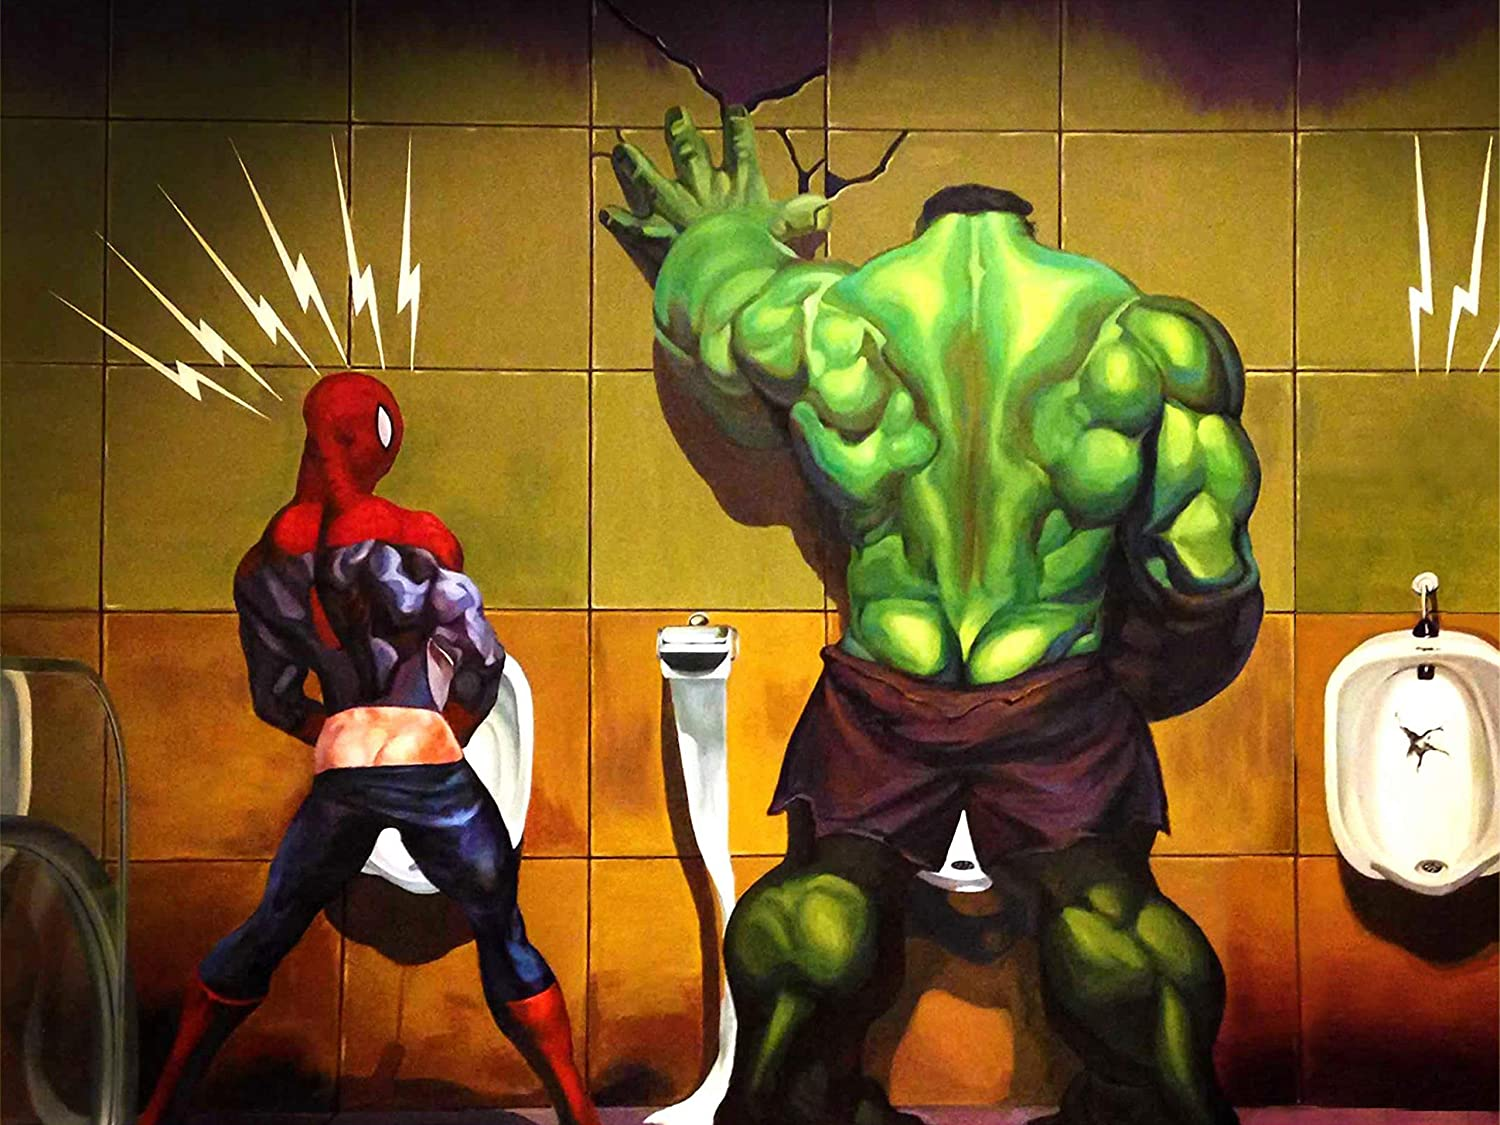 Funny Toilet Hulk Avengers Poster Standard Size 18×24 inches